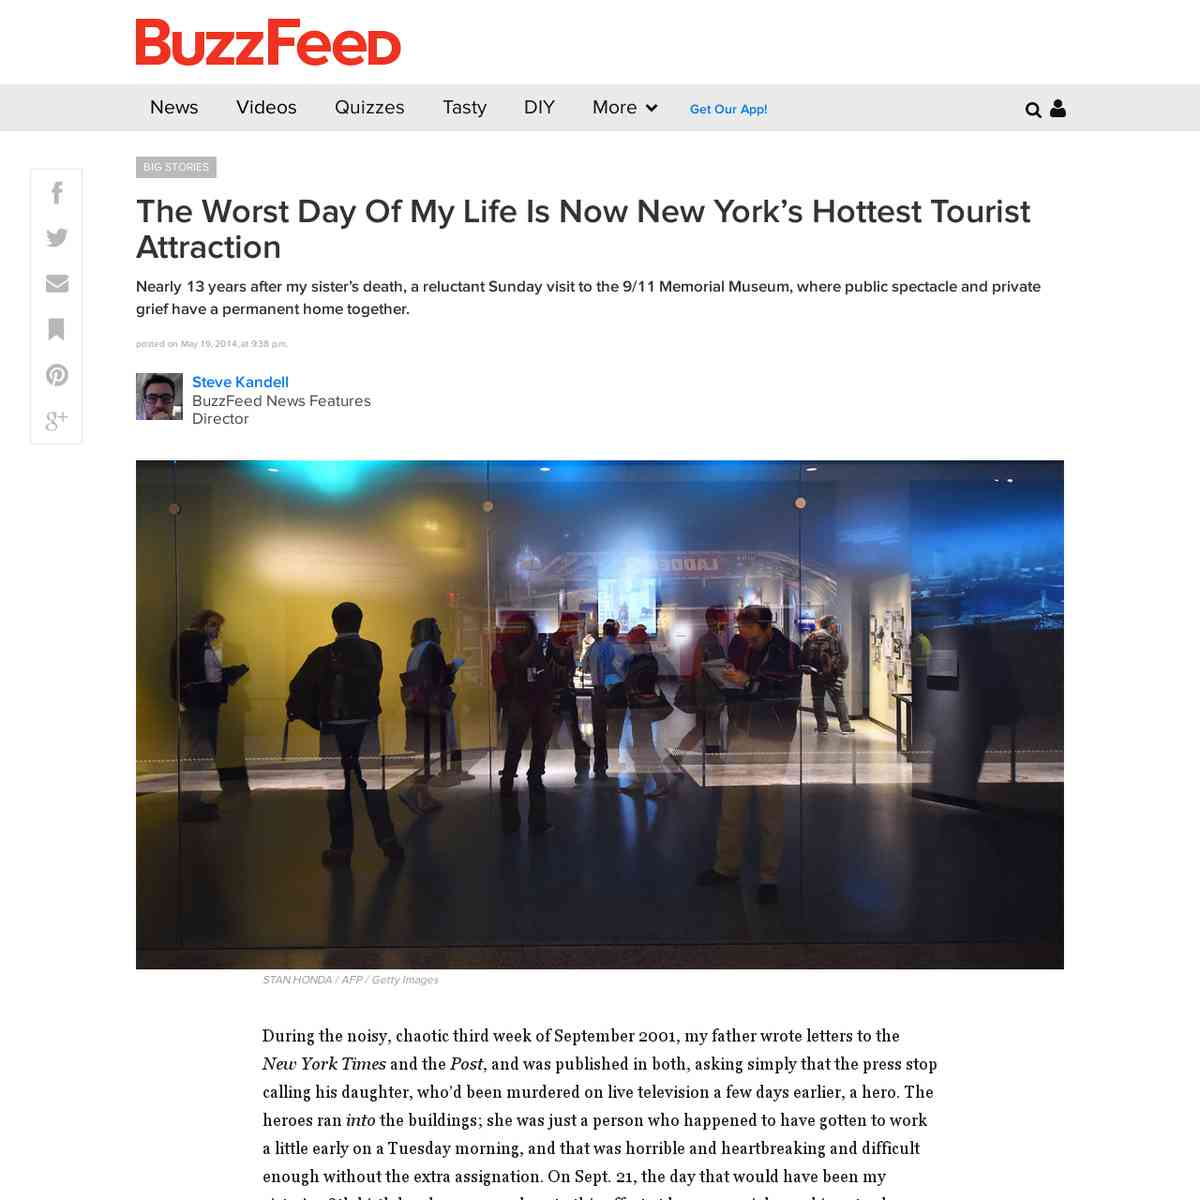 The Worst Day Of My Life Is Now New York's Hottest Tourist Attraction - BuzzFeed News